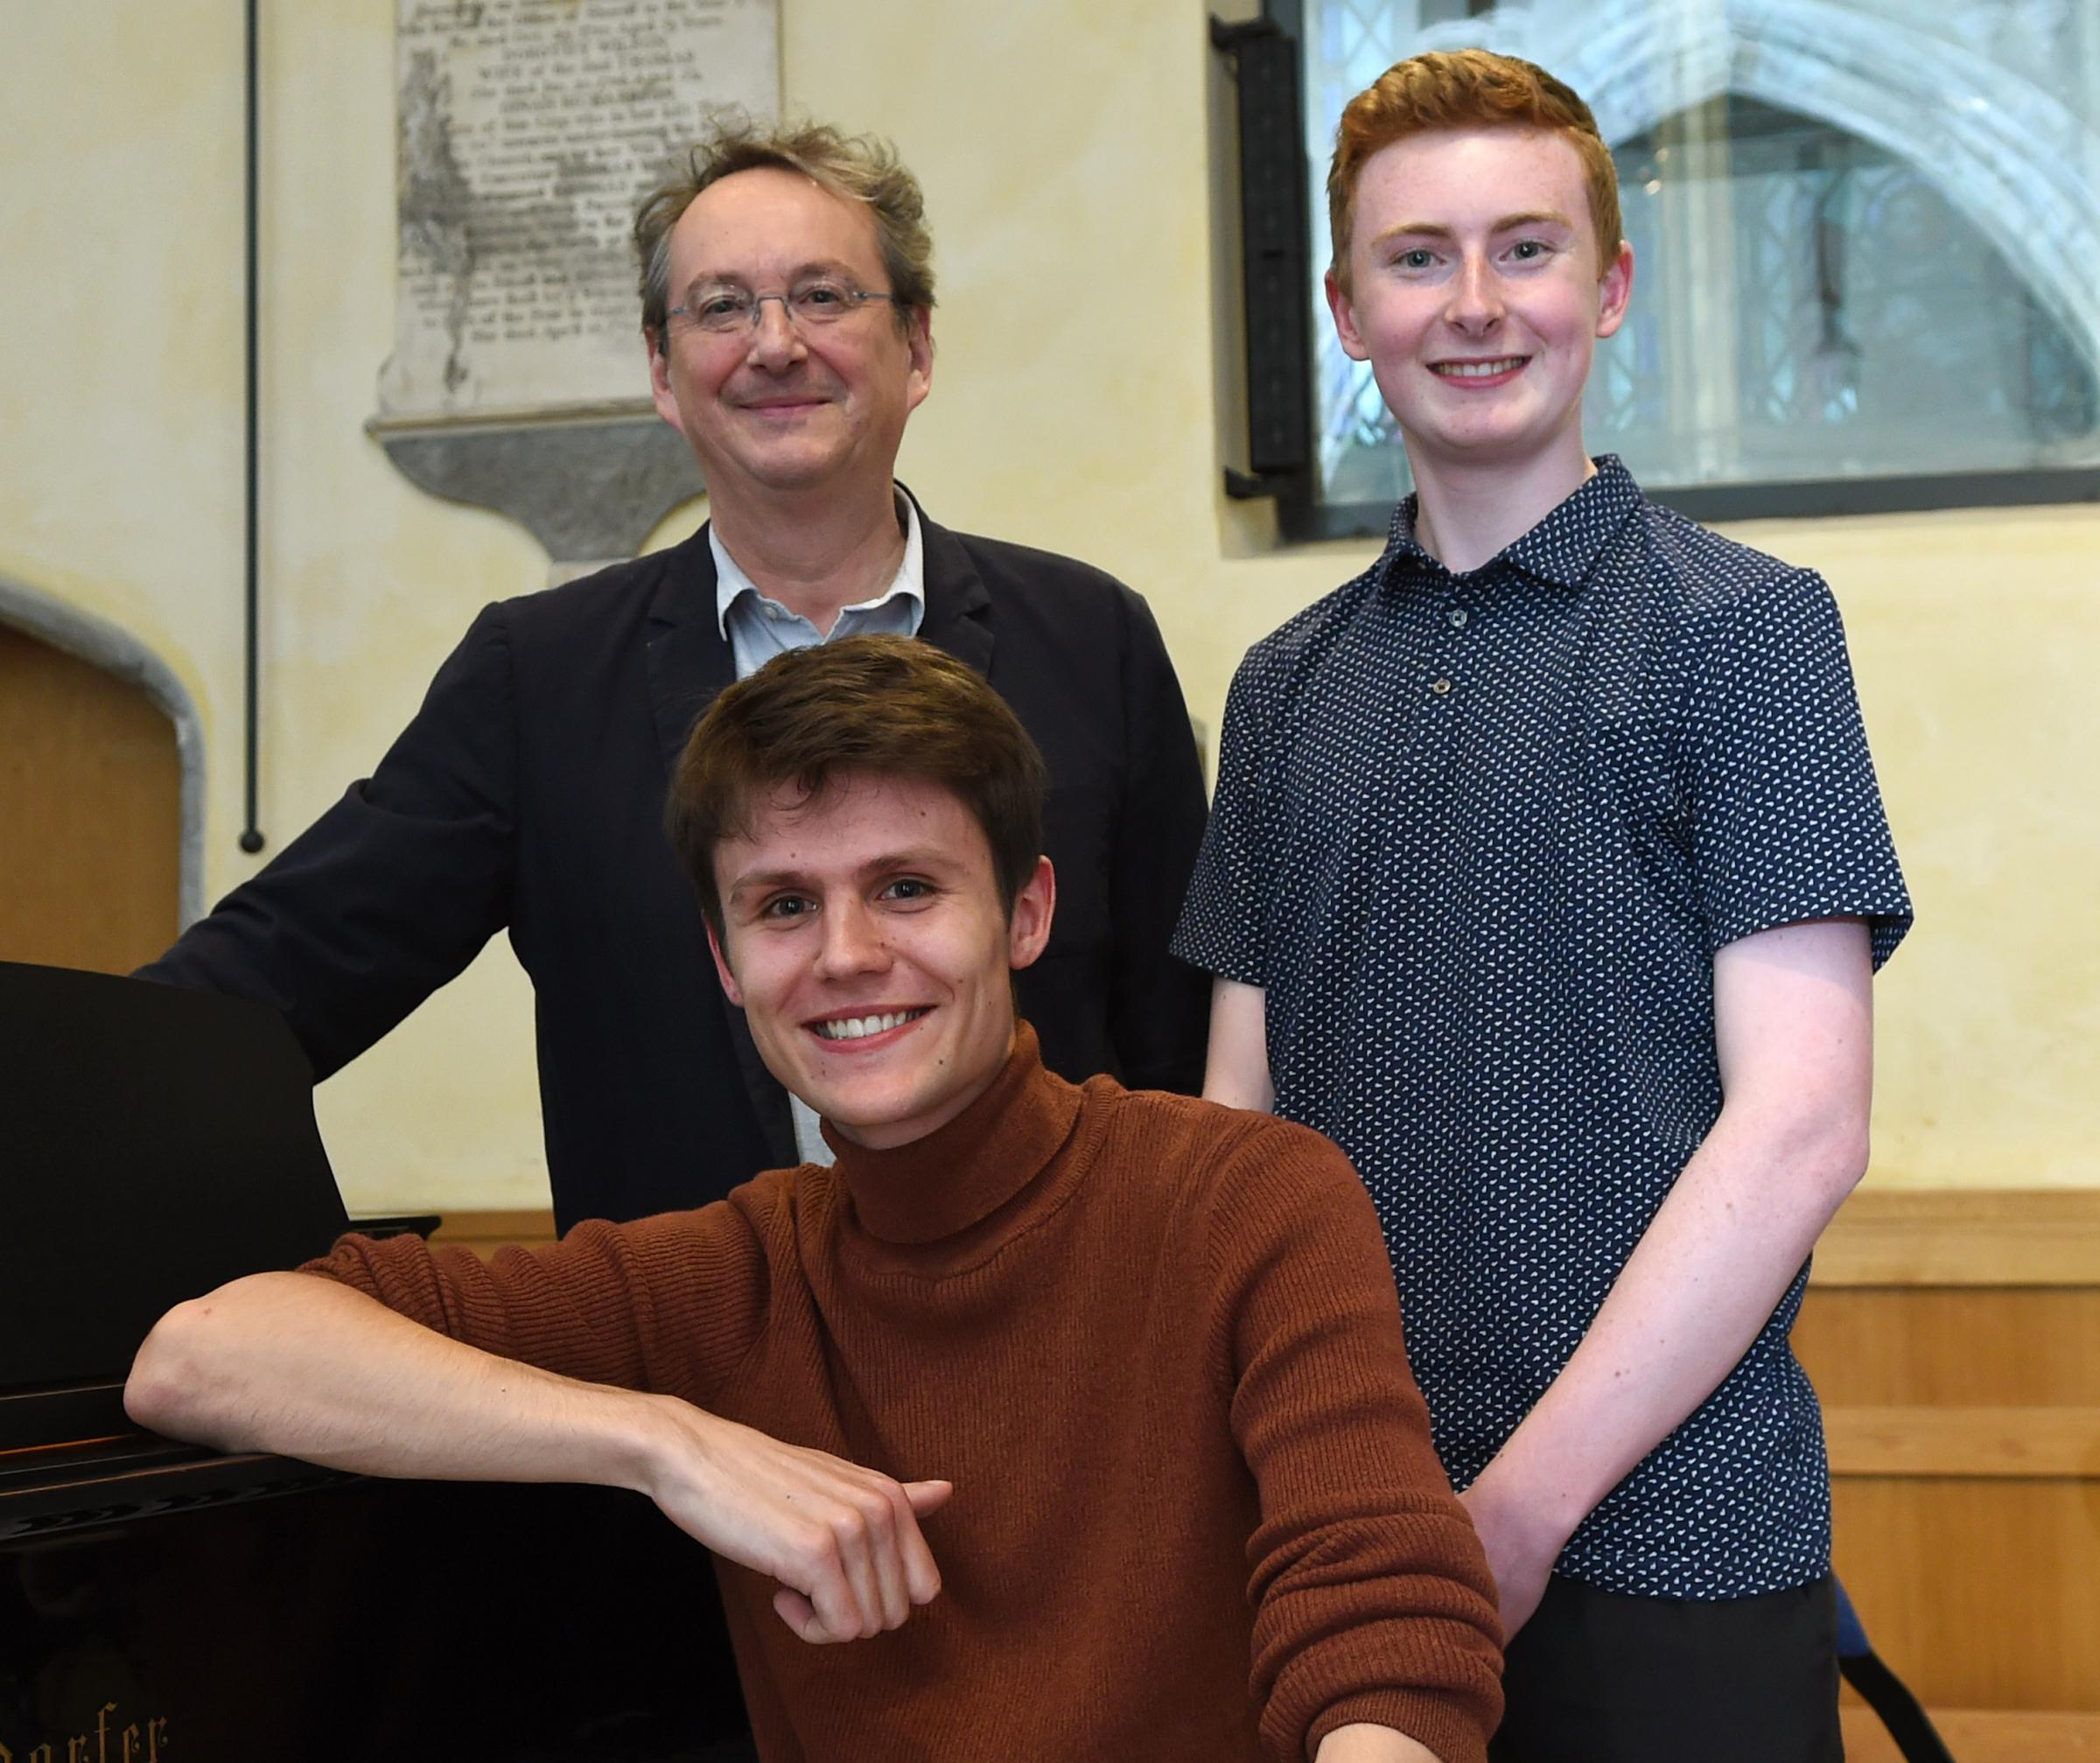 2017 NCEM Young Composers Award winners Dominic Wills (18 and under, back) and Frederick Viner (19 to 25) with Peter Philips, director of the Tallis Scholars